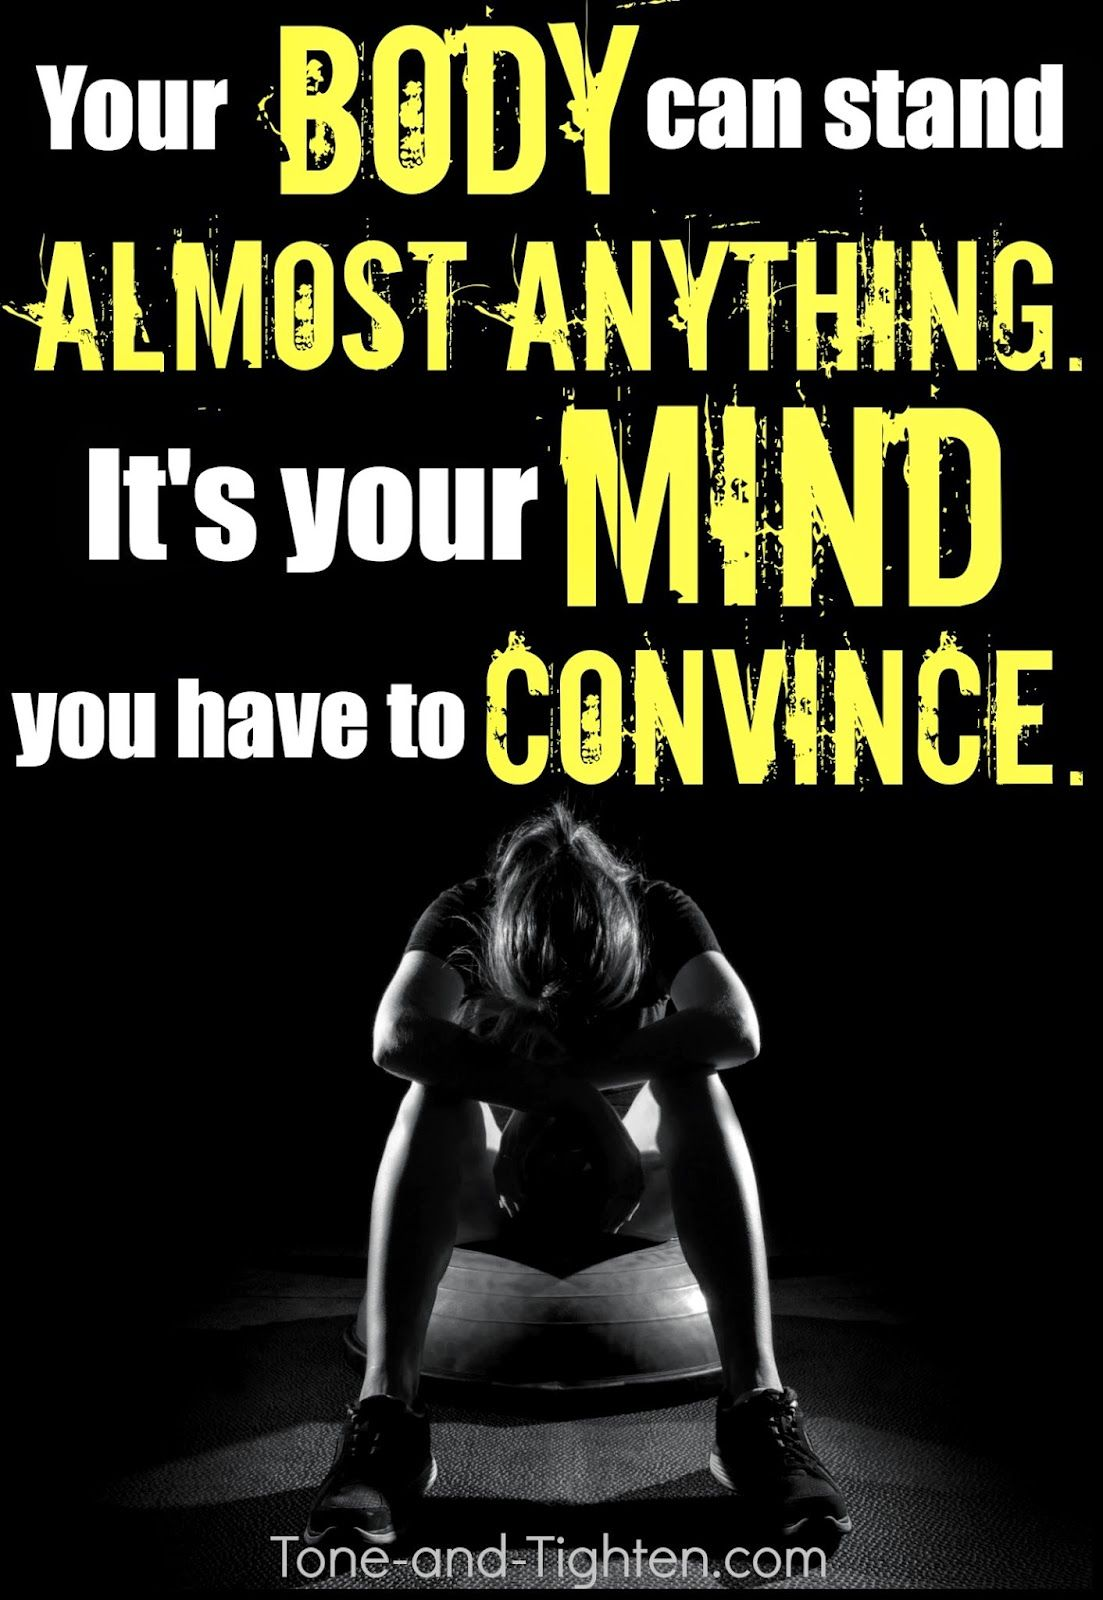 f274bd02383fb The hardest muscle to train  Your MIND. Push your limits to realize your  true potential.  fitness  motivation from Tone-and-Tighten.com